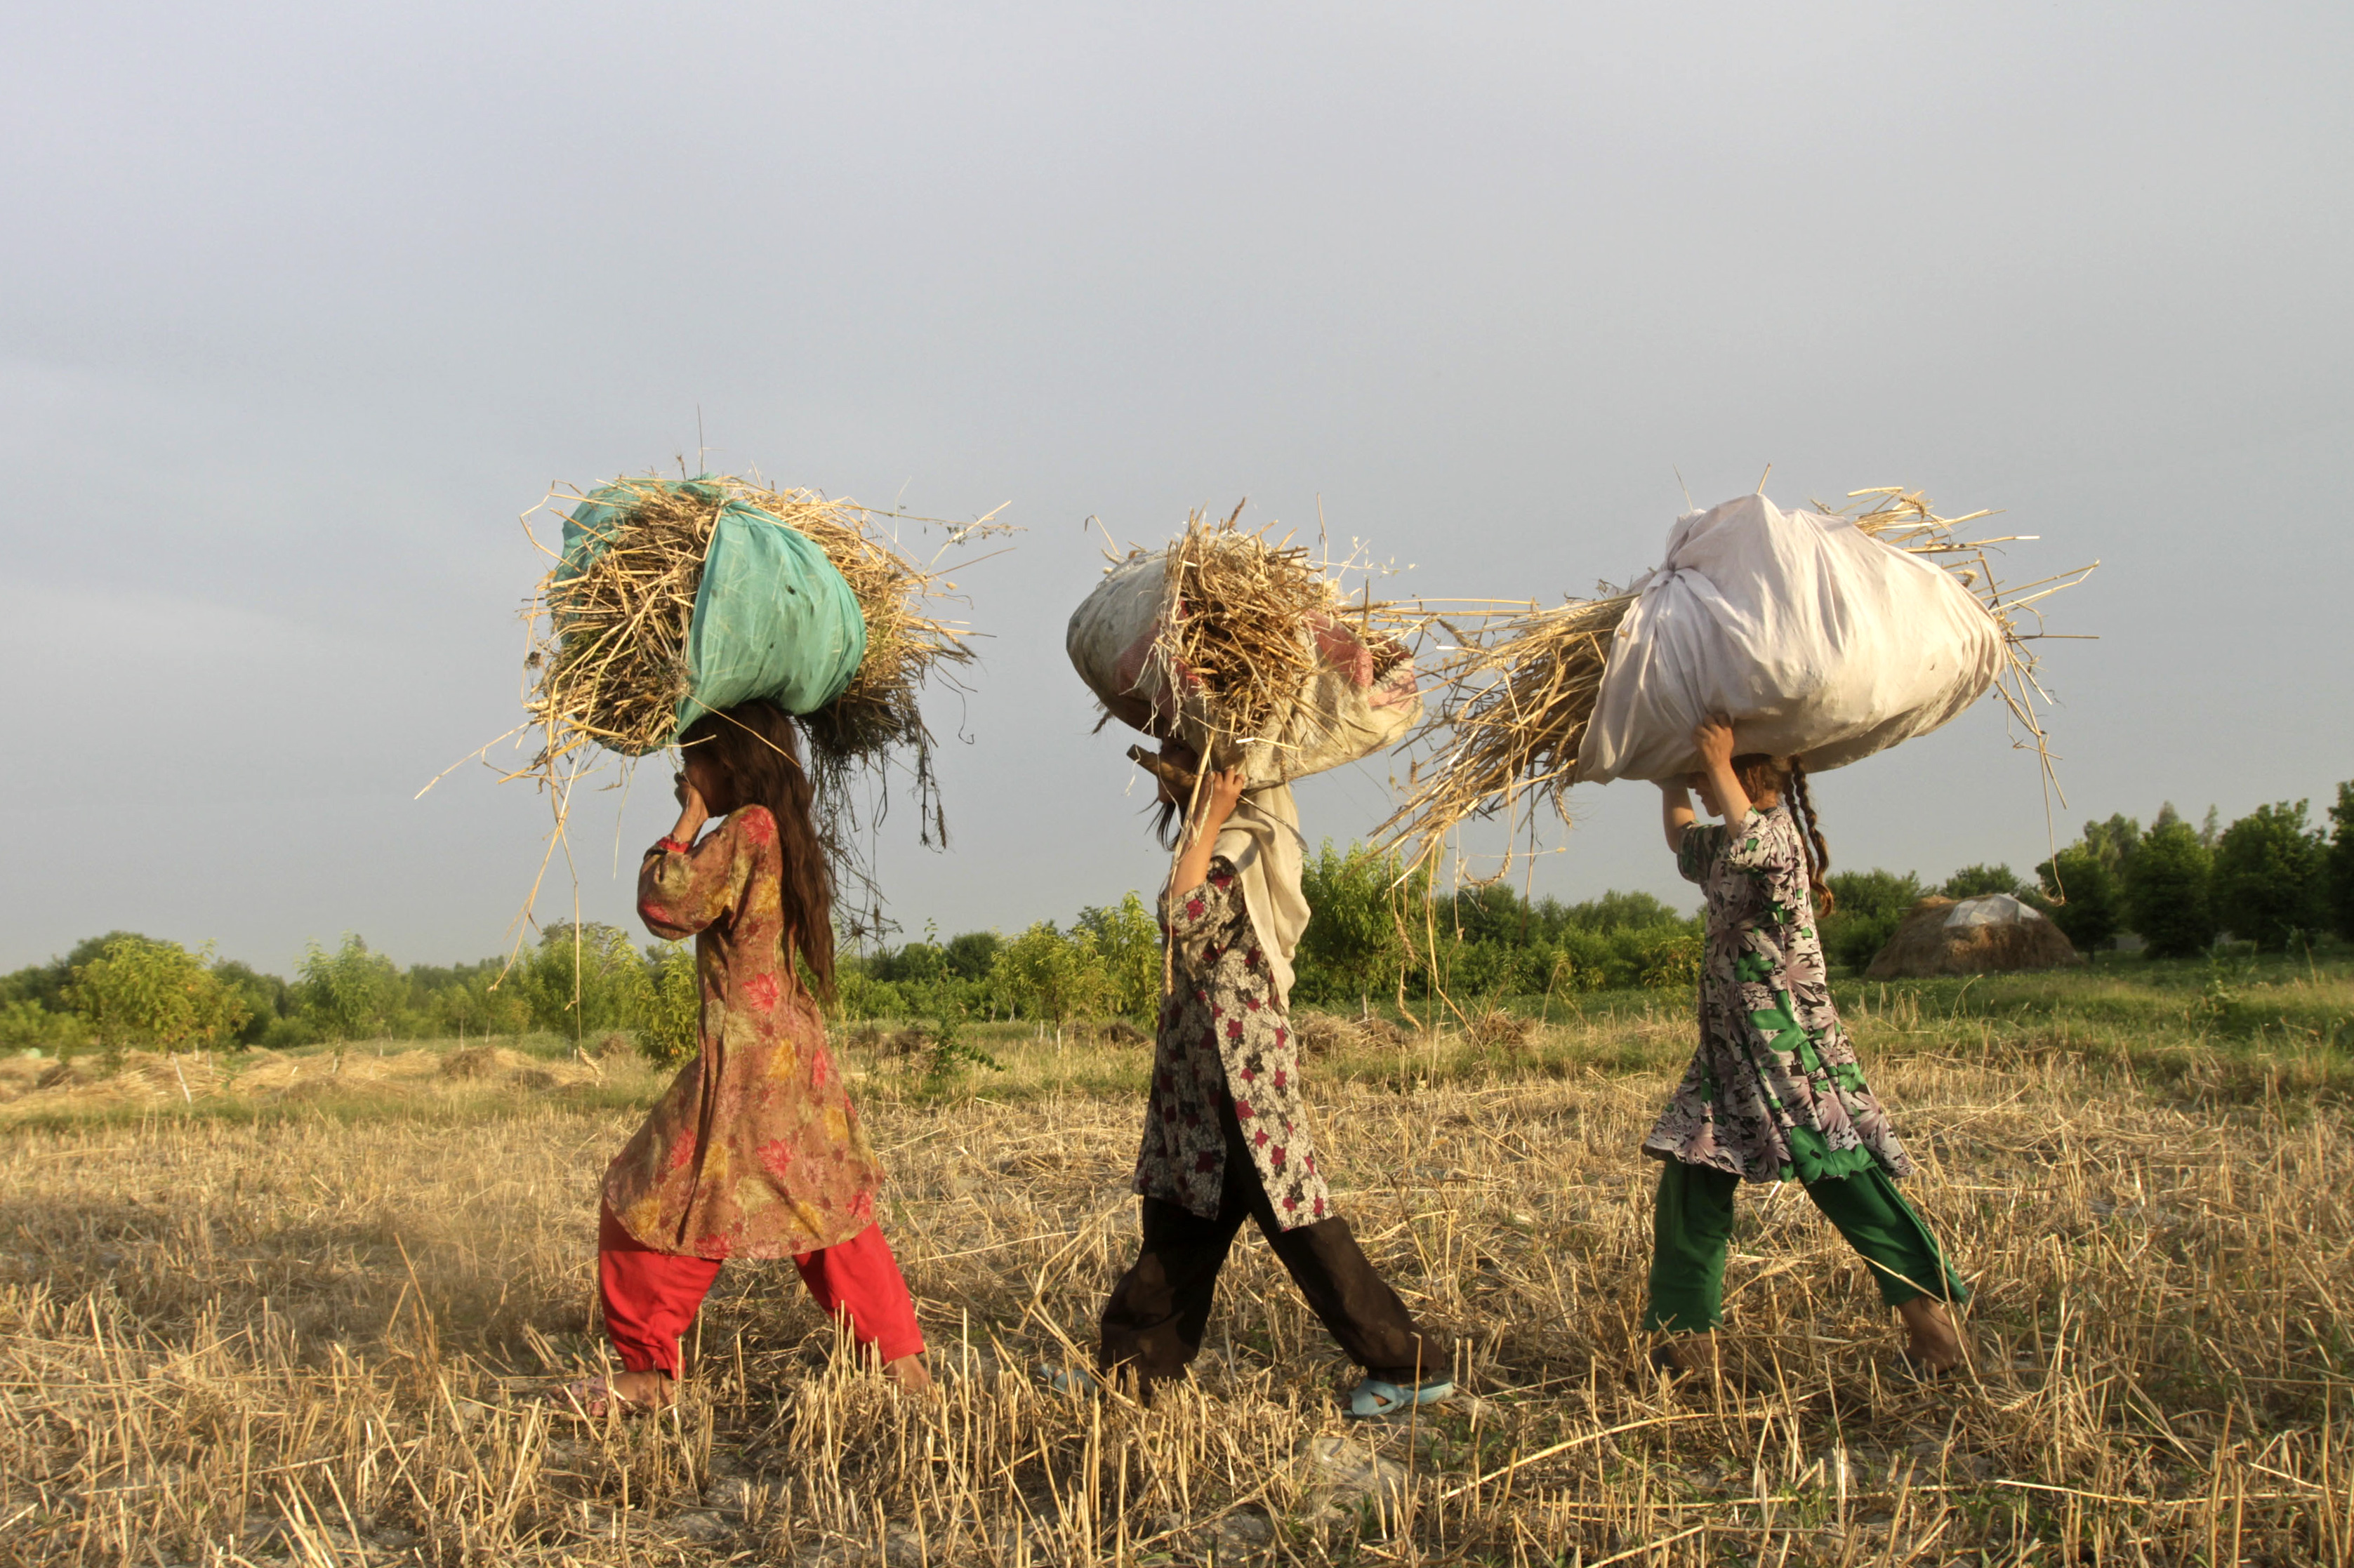 Afghan girls carry wheat as they work on a wheat field in outskirts of Jalalabad province, May 15, 2014. REUTERS/ Parwiz (AFGHANISTAN - Tags: AGRICULTURE SOCIETY)